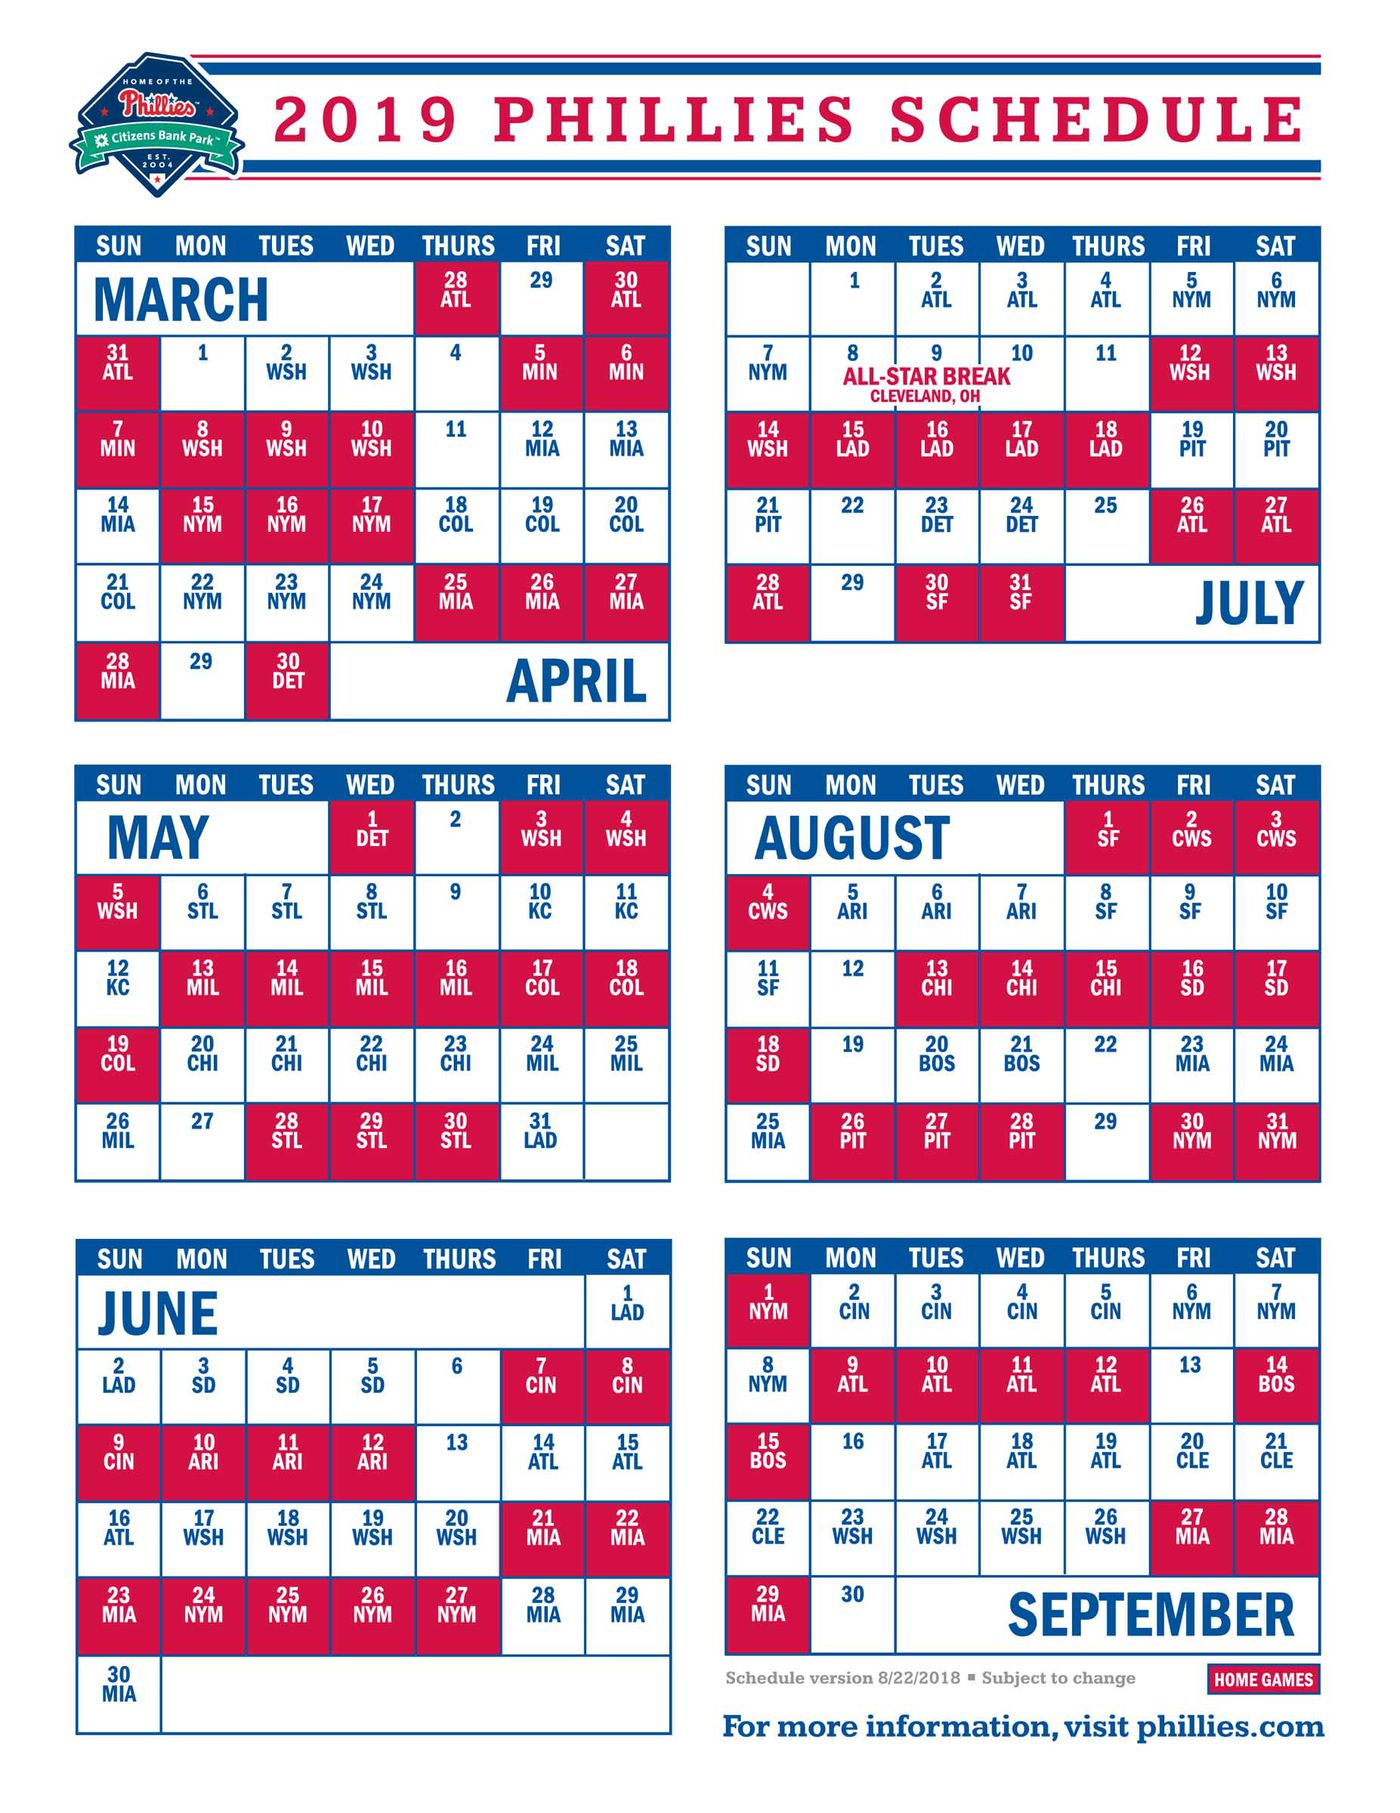 2019 Braves Schedule Phillies to open 2019 schedule against the Braves